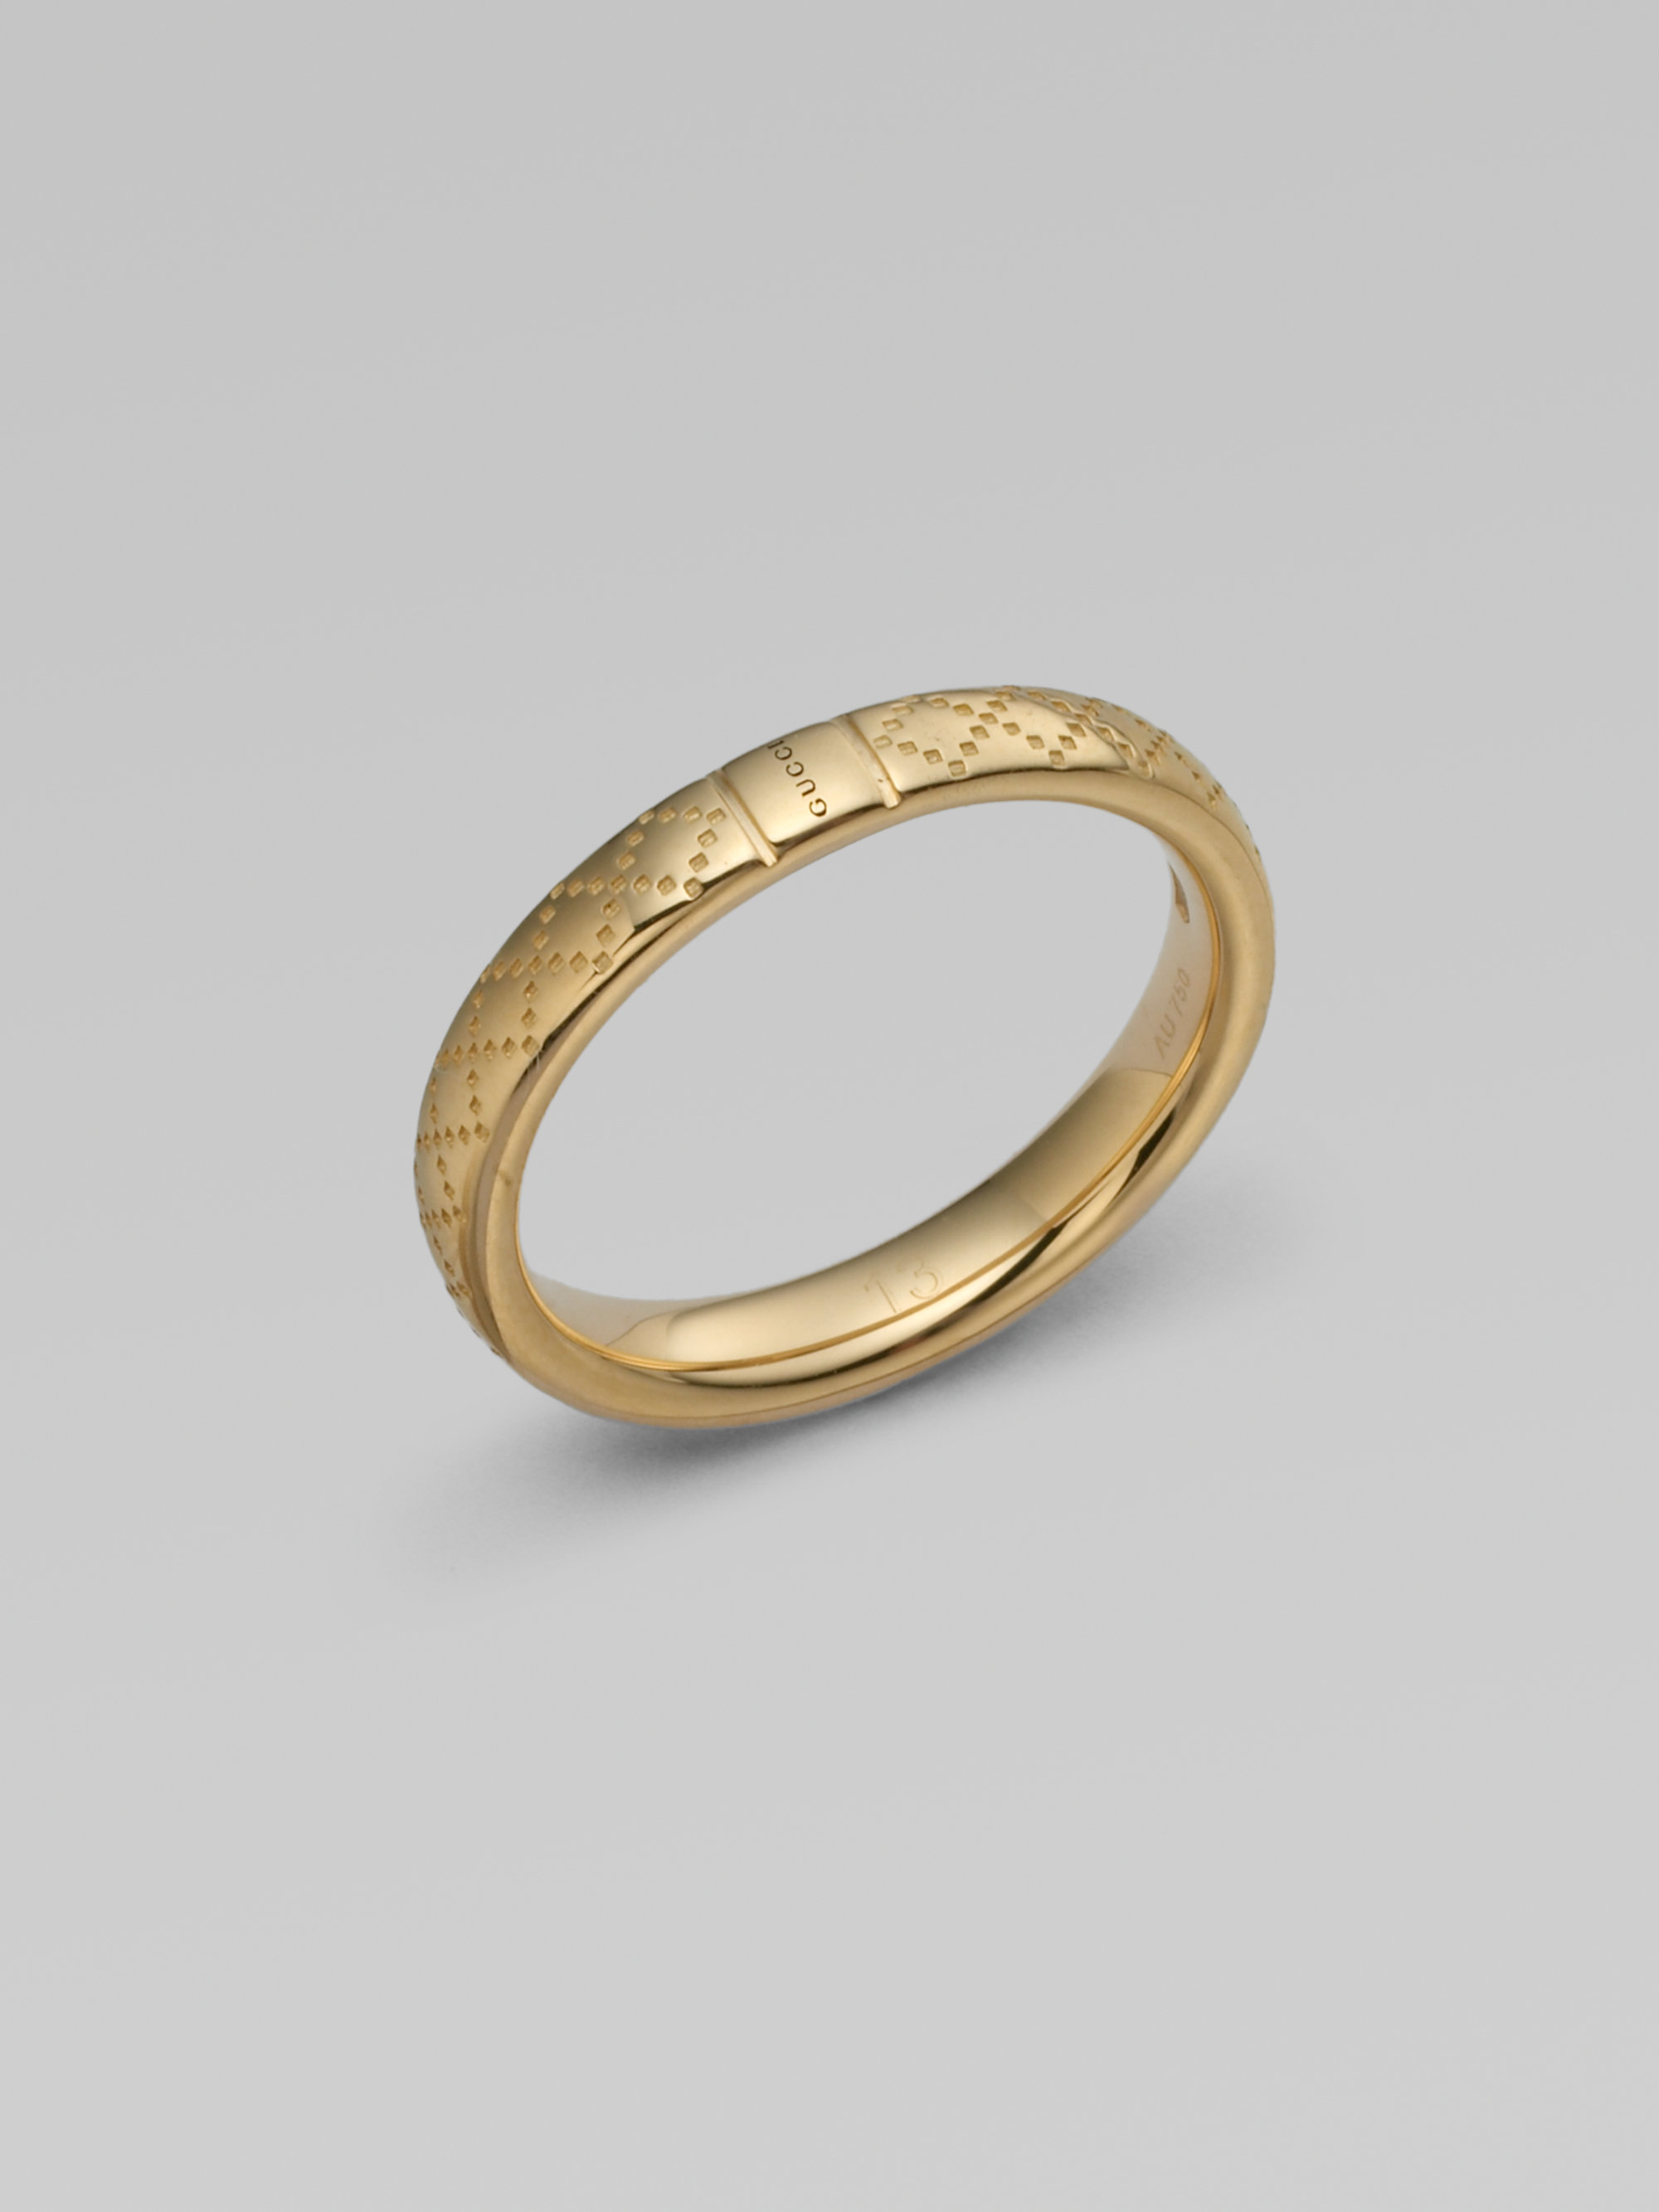 Lyst - Gucci 18k Gold Ring in Metallic